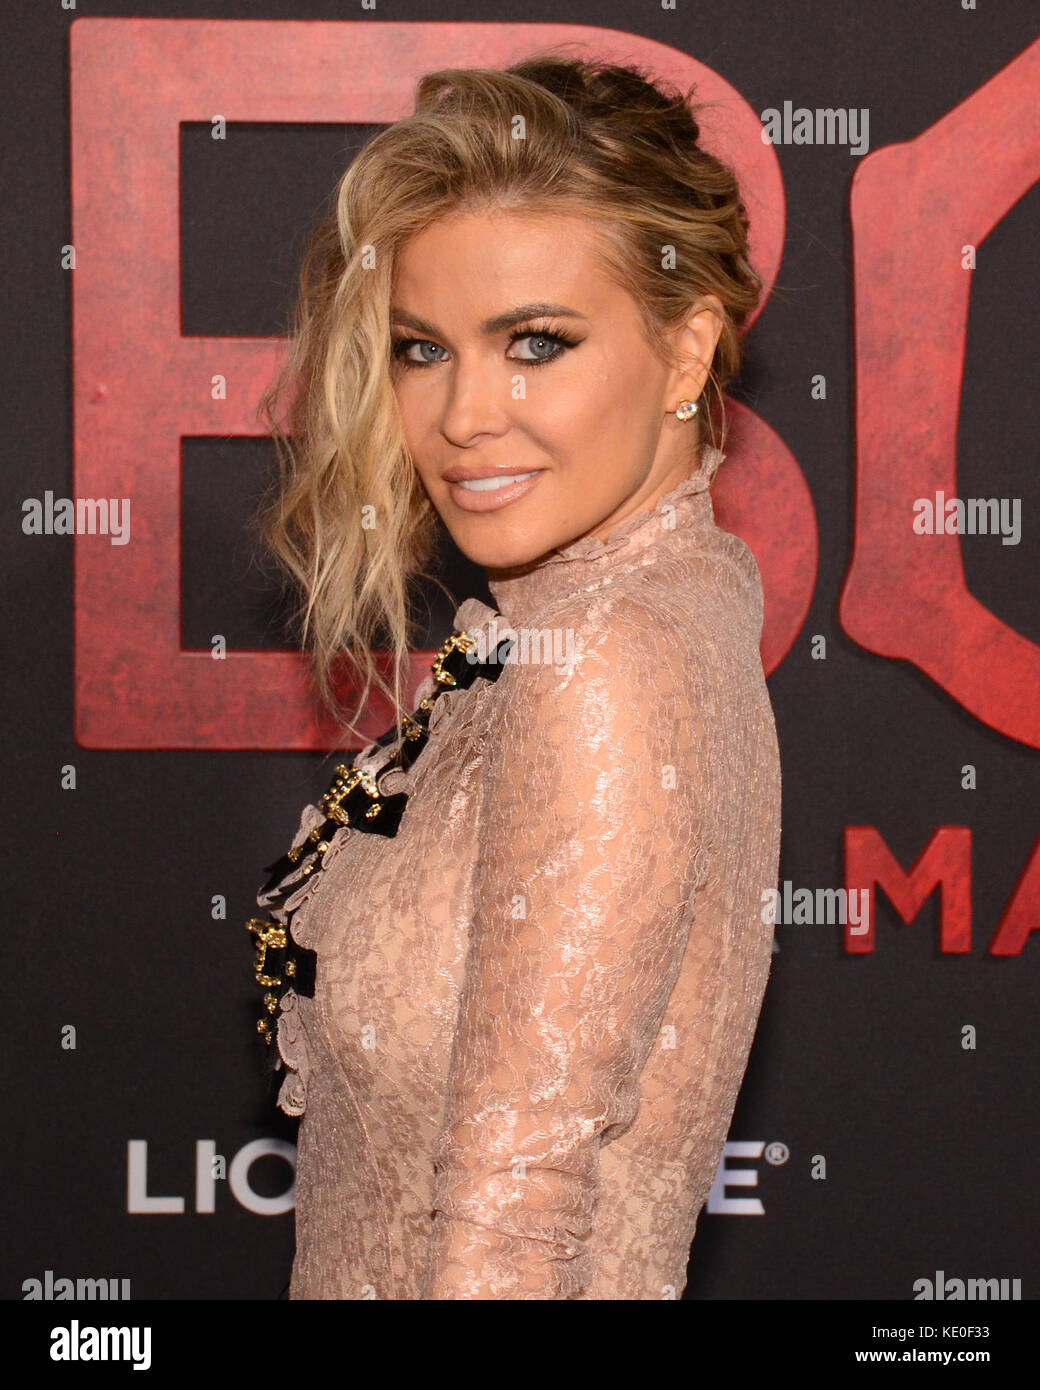 Los Angeles, California, USA. 16th Oct, 2017. TARA LEIGH PARTICK aka CARMEN ELECTRA arrives on the Red Carpet for - Stock Image